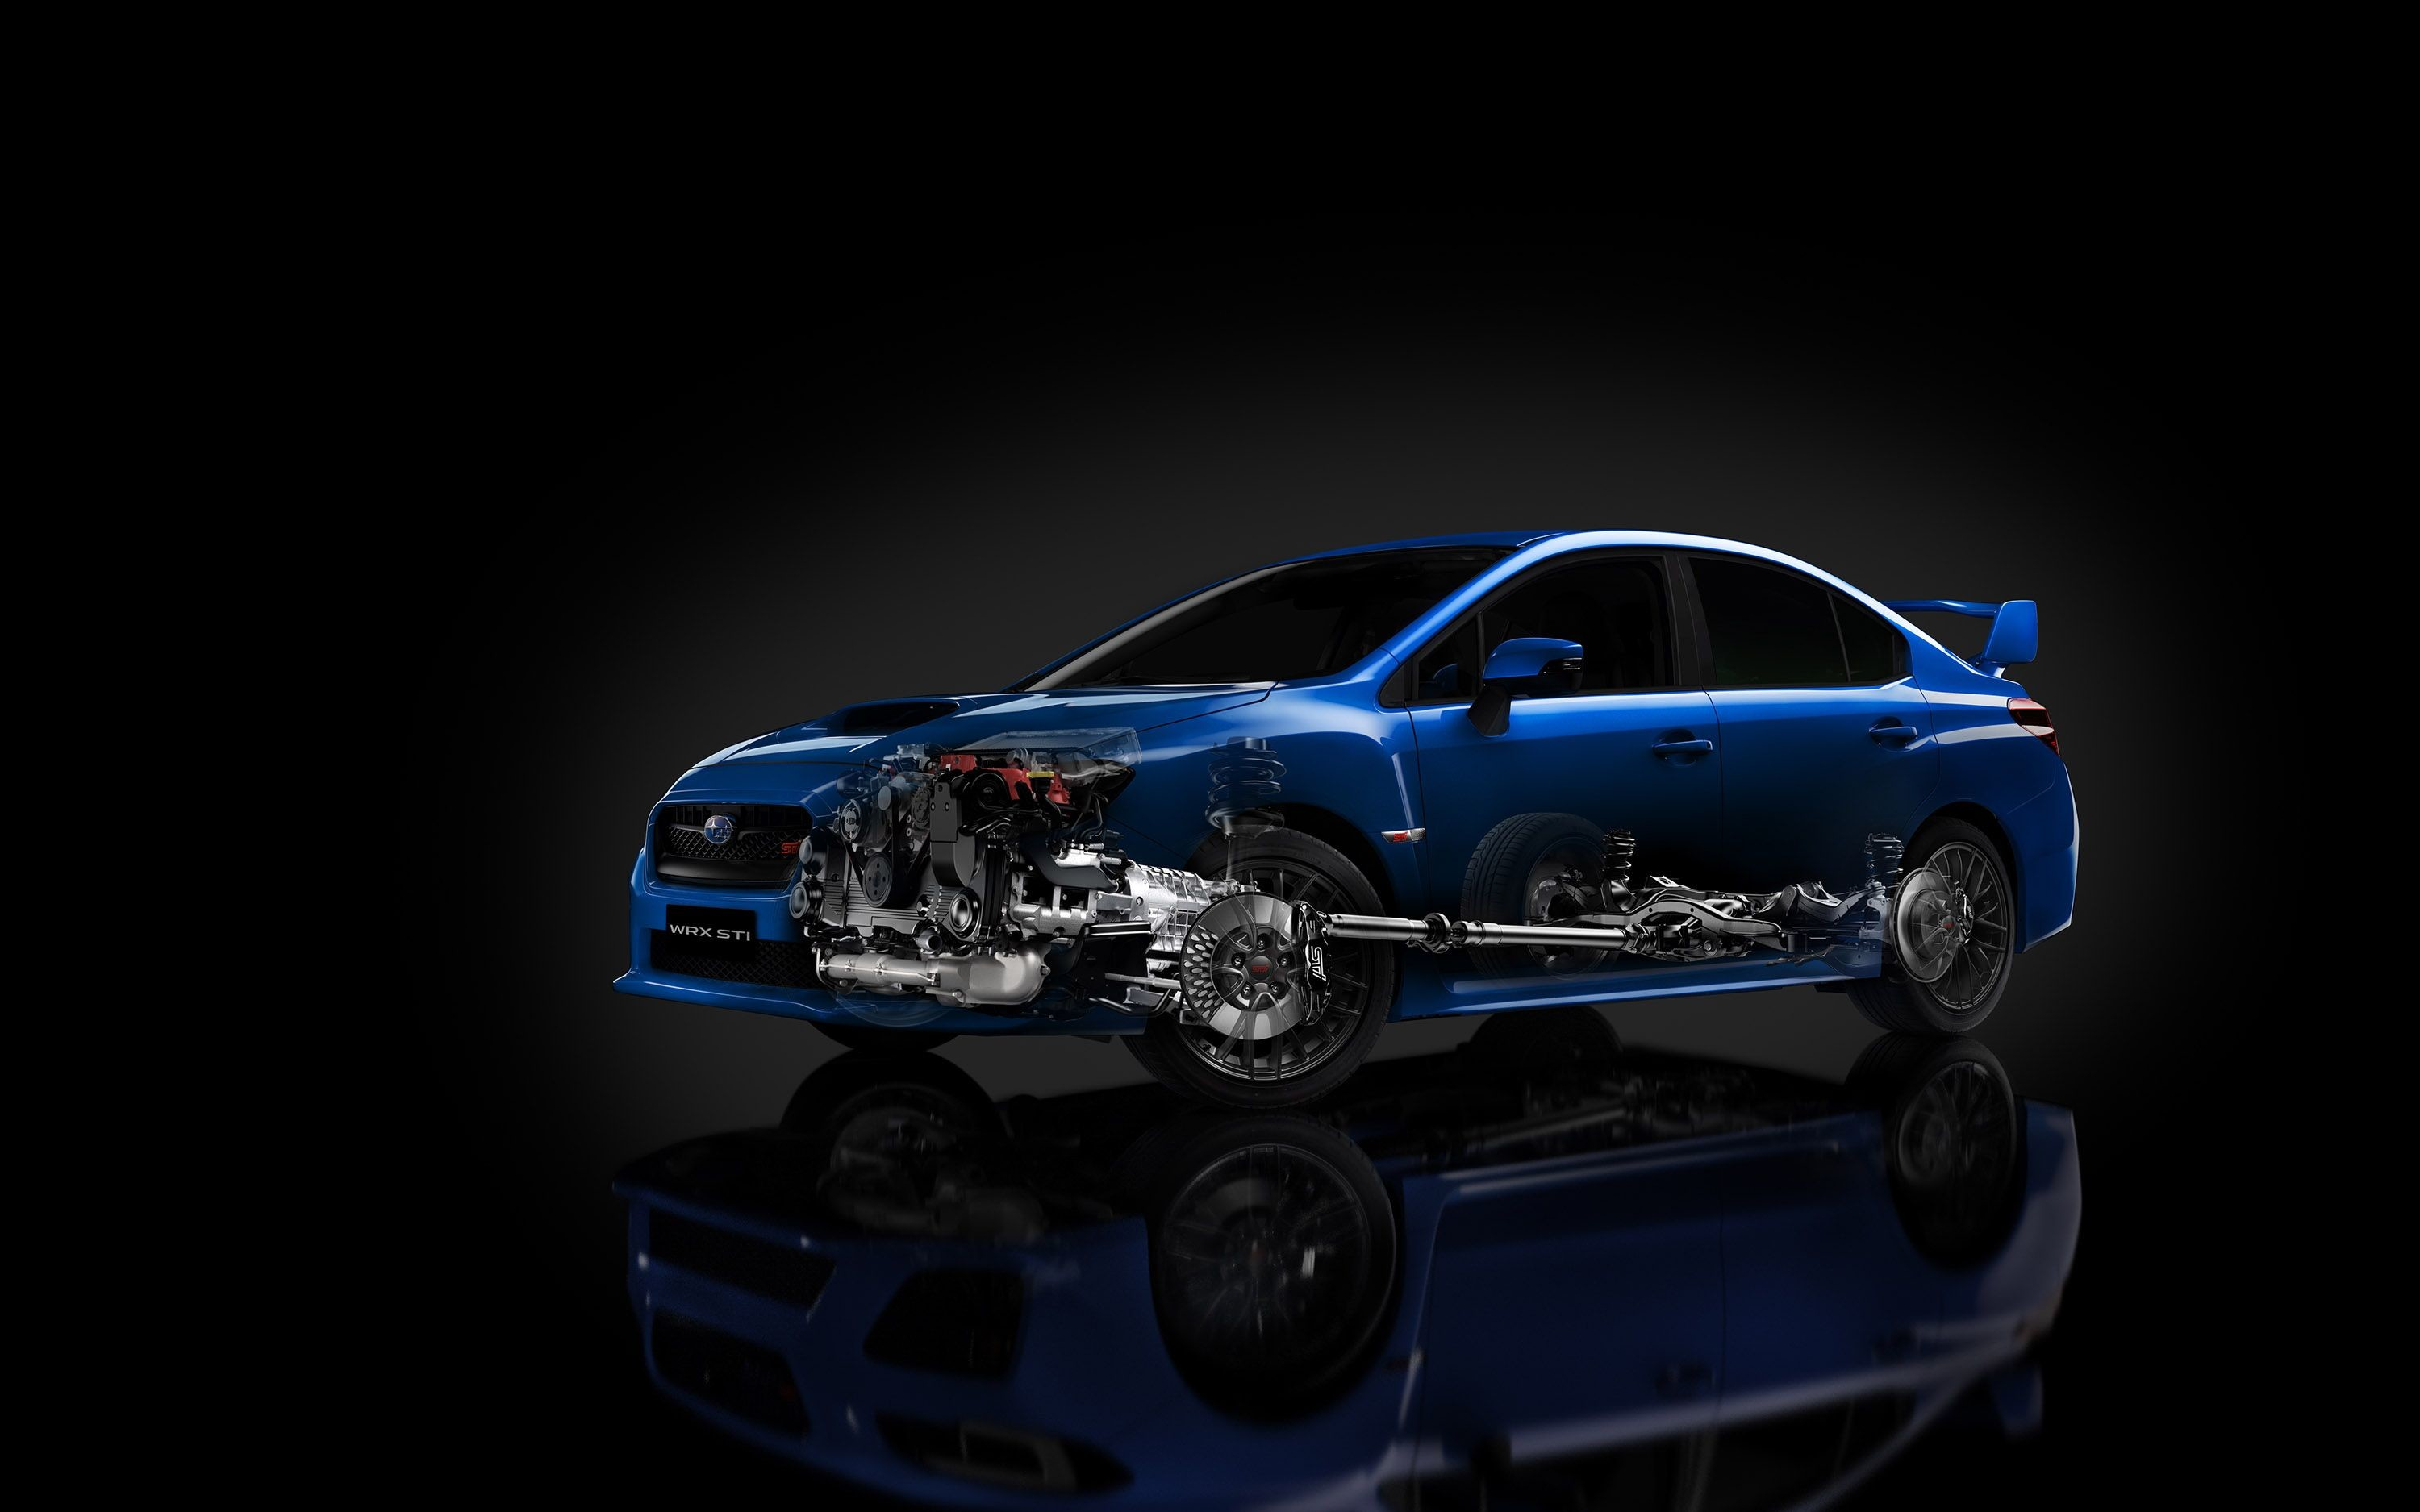 Res: 3000x1875, The 2015 Subaru WRX STI revealed with a meaner look and 305 bhp engine to  back it up.